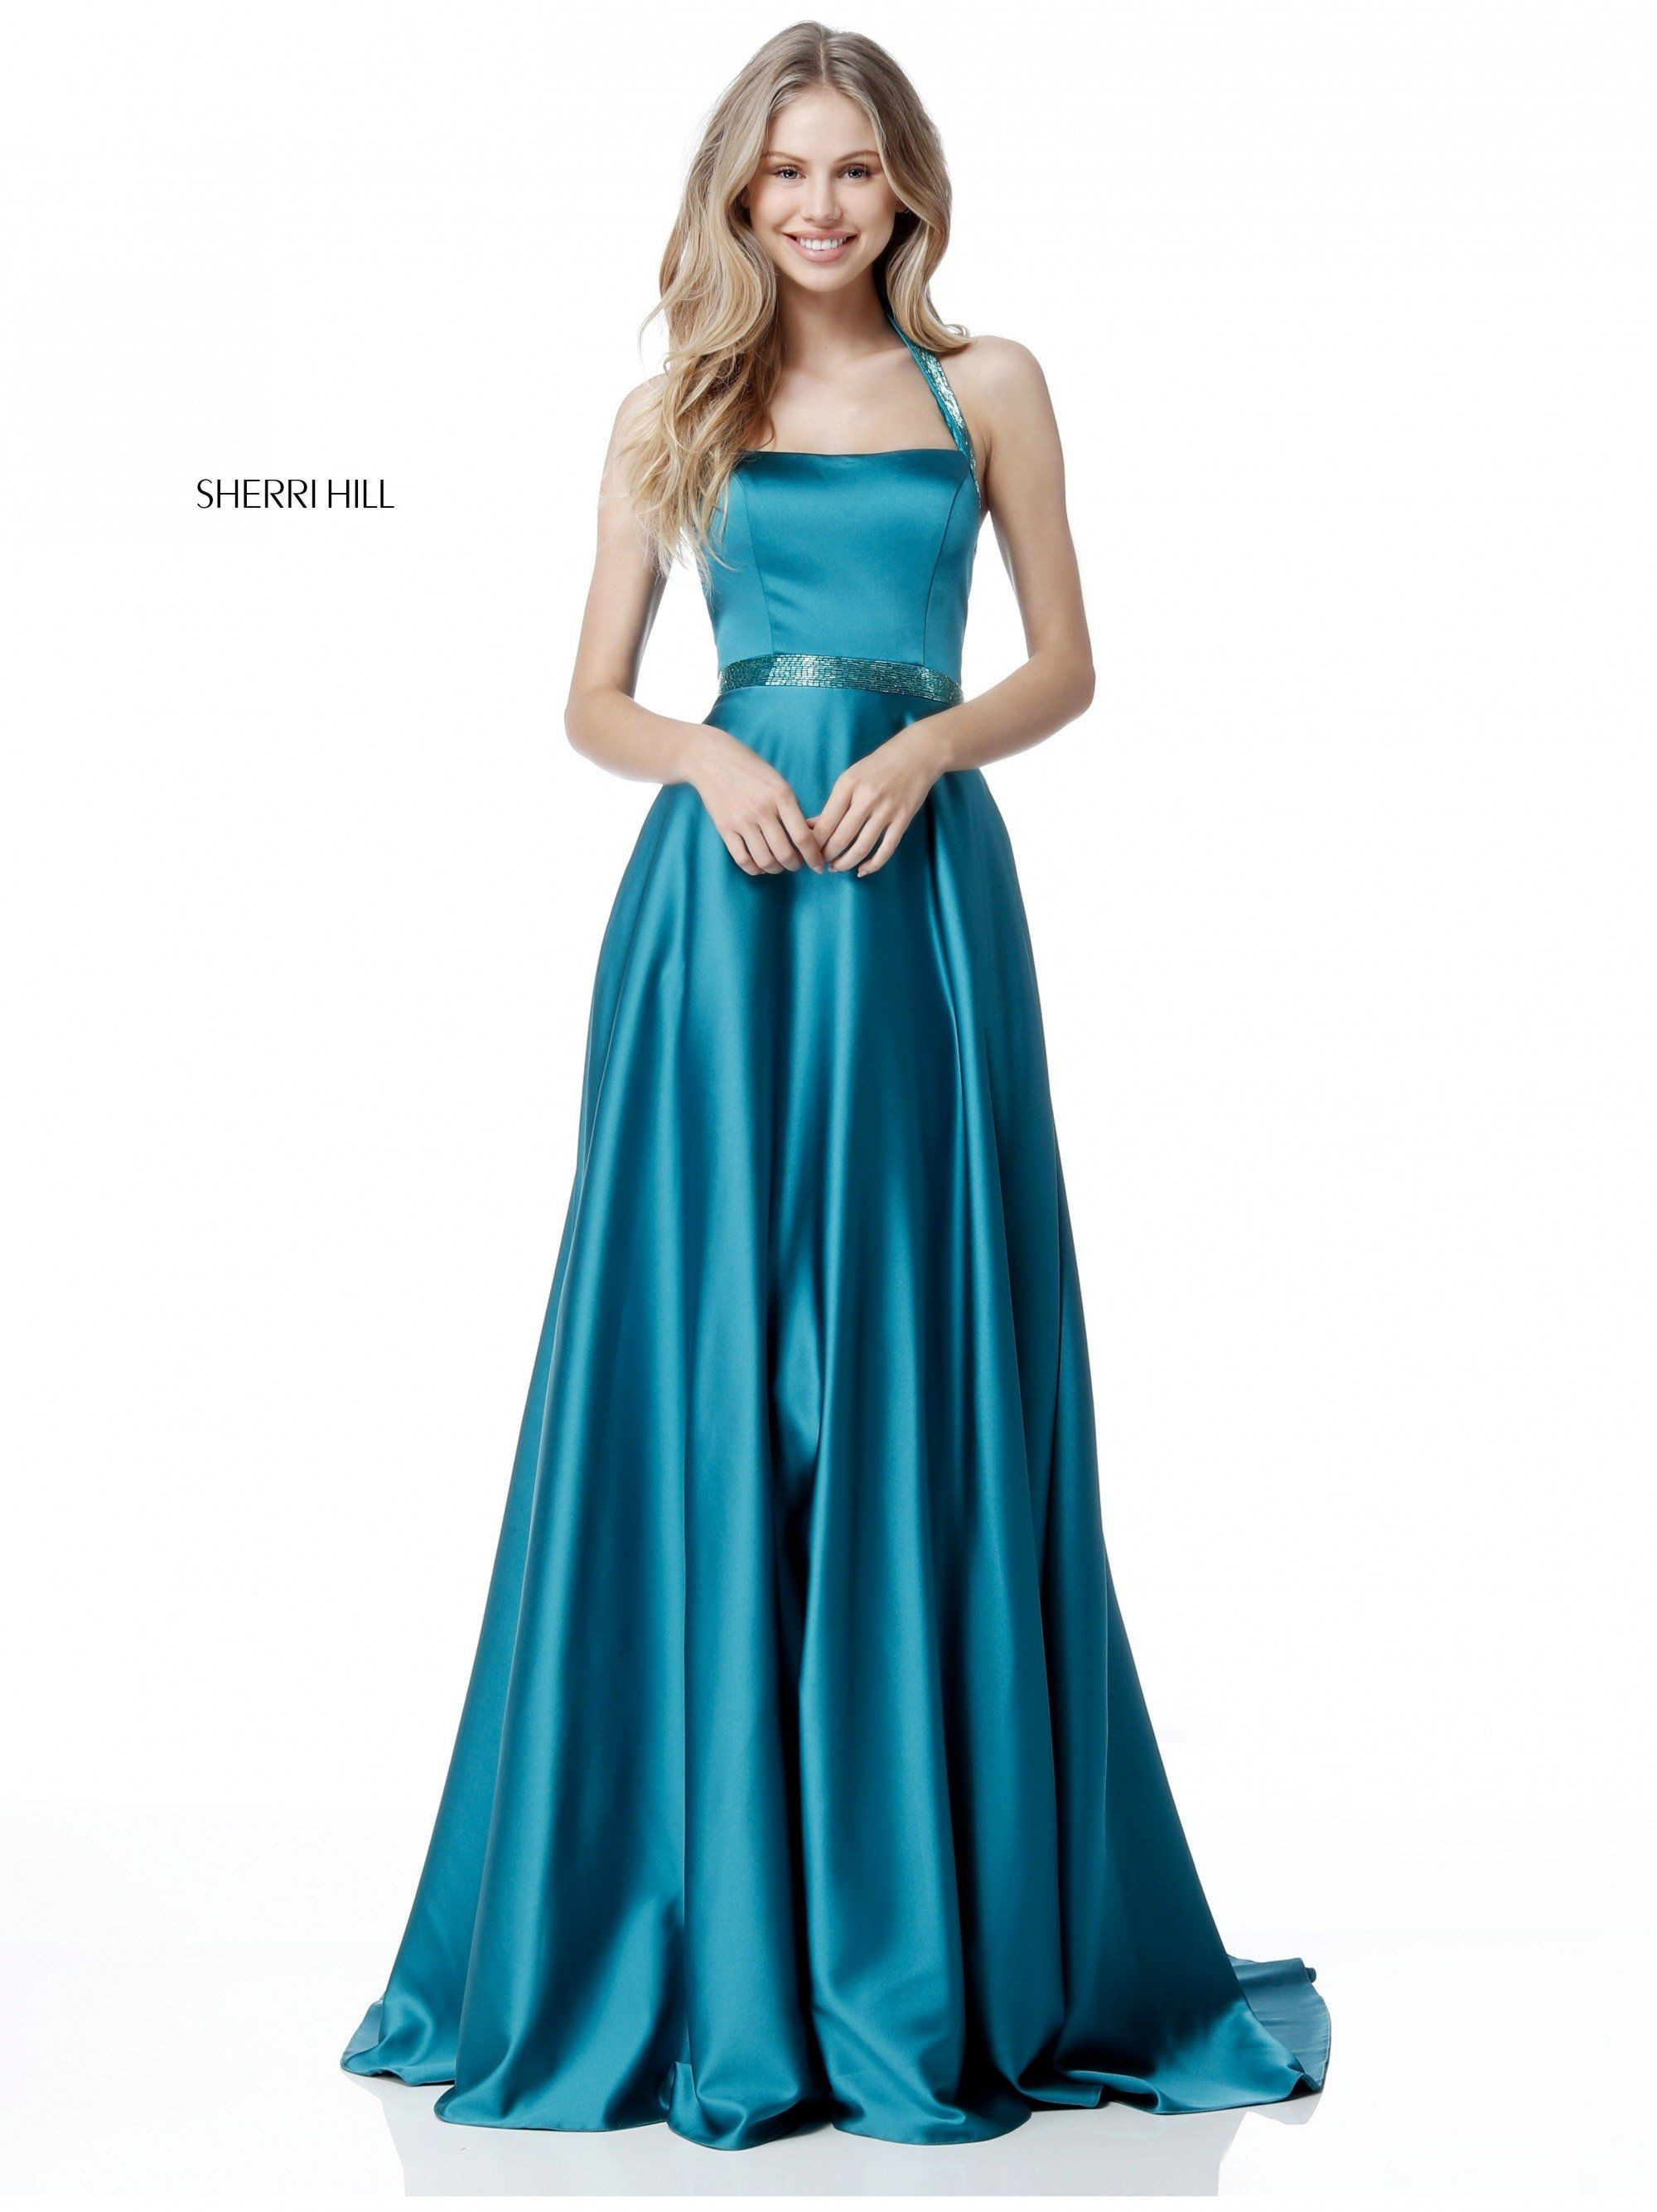 Sherri Hill 51646 | Prom, Drop and Ships